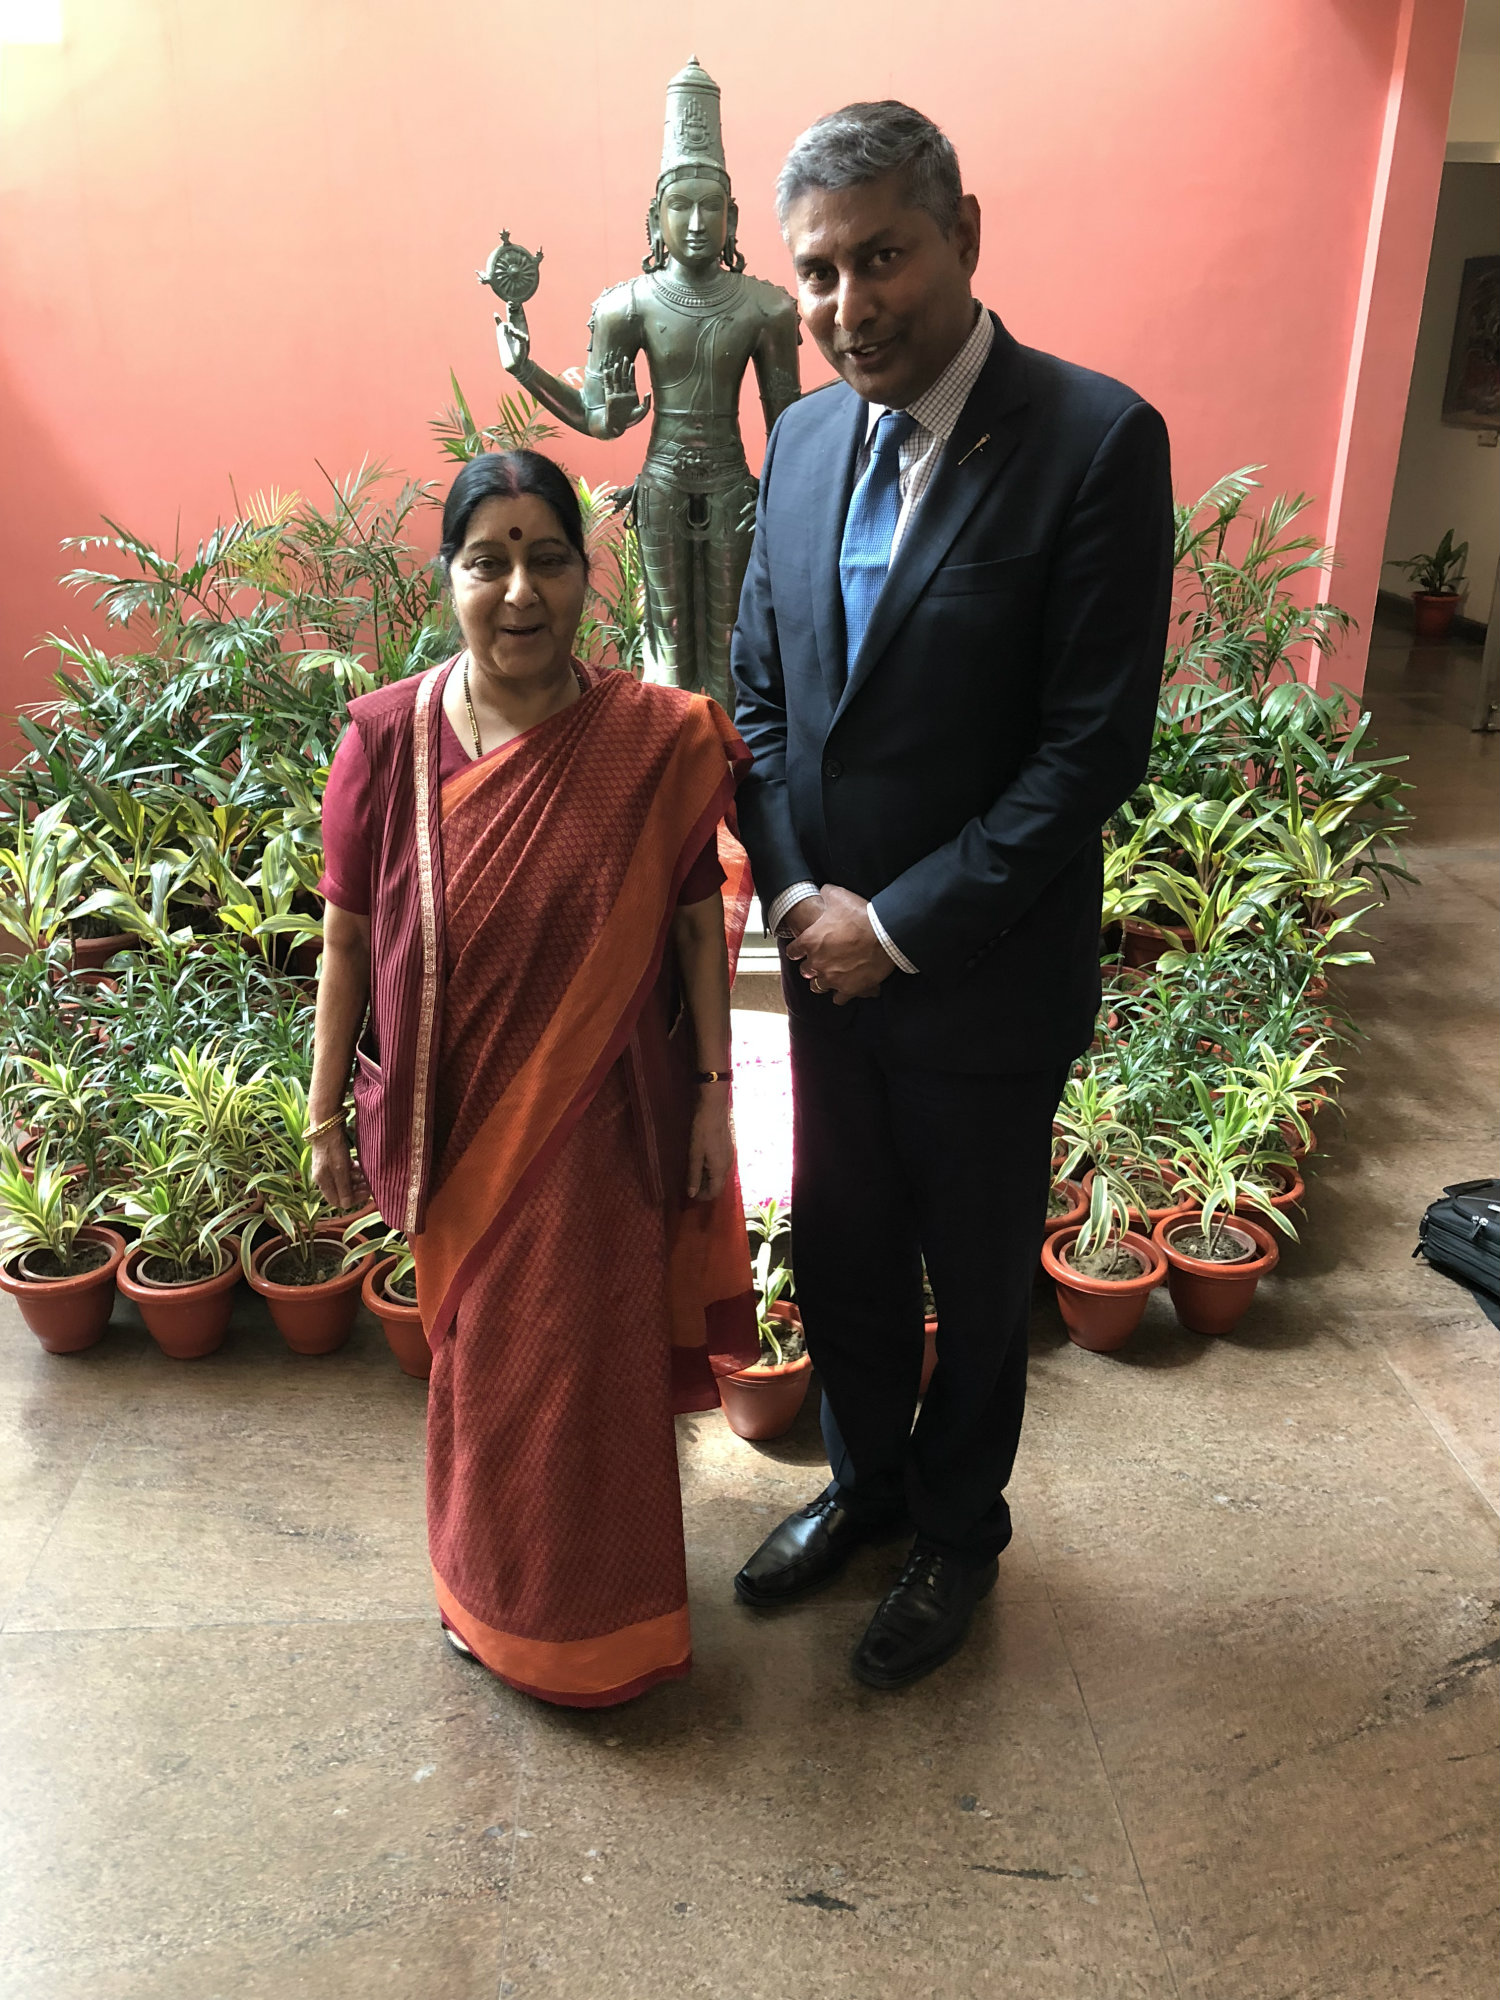 Sushma_Swaraj__Minister_of_External_Affairs_of_India_and_I.jpg